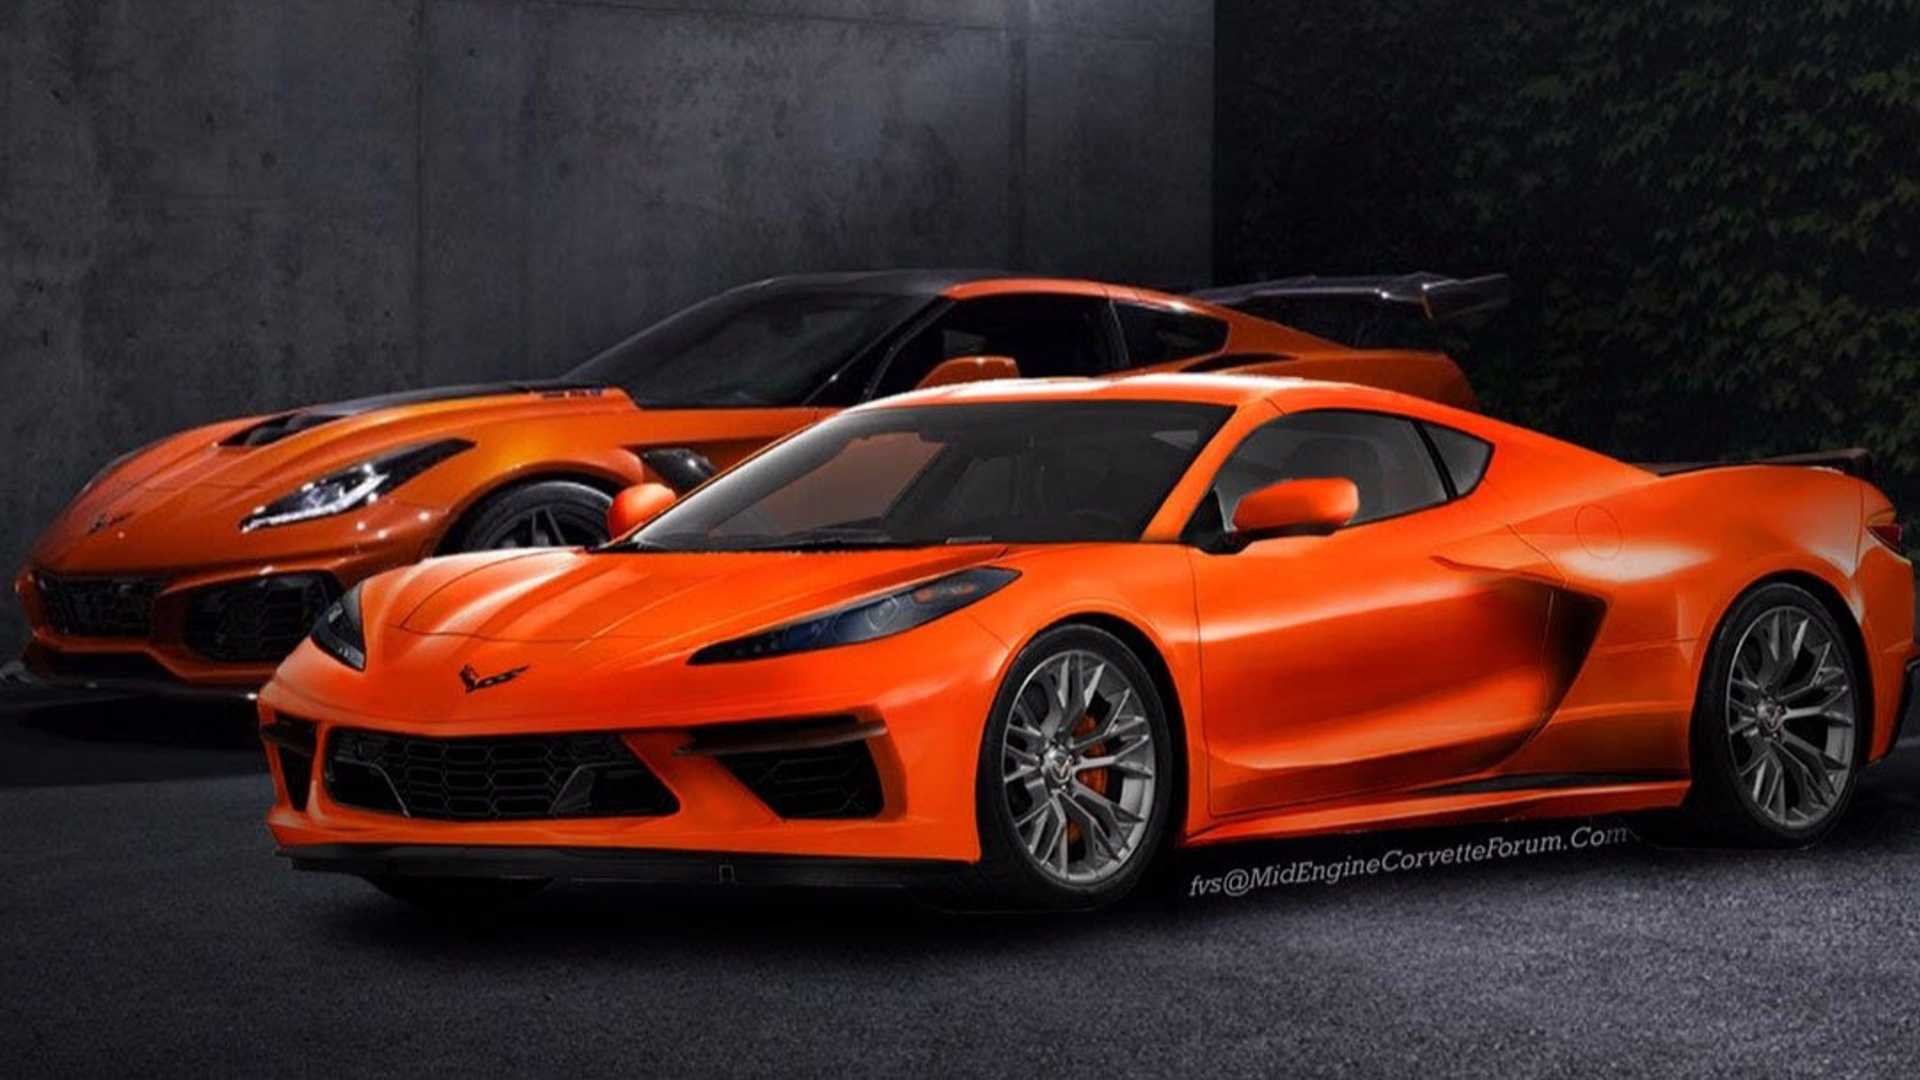 77 New 2020 Chevrolet Corvette Zr1 Exterior and Interior by 2020 Chevrolet Corvette Zr1